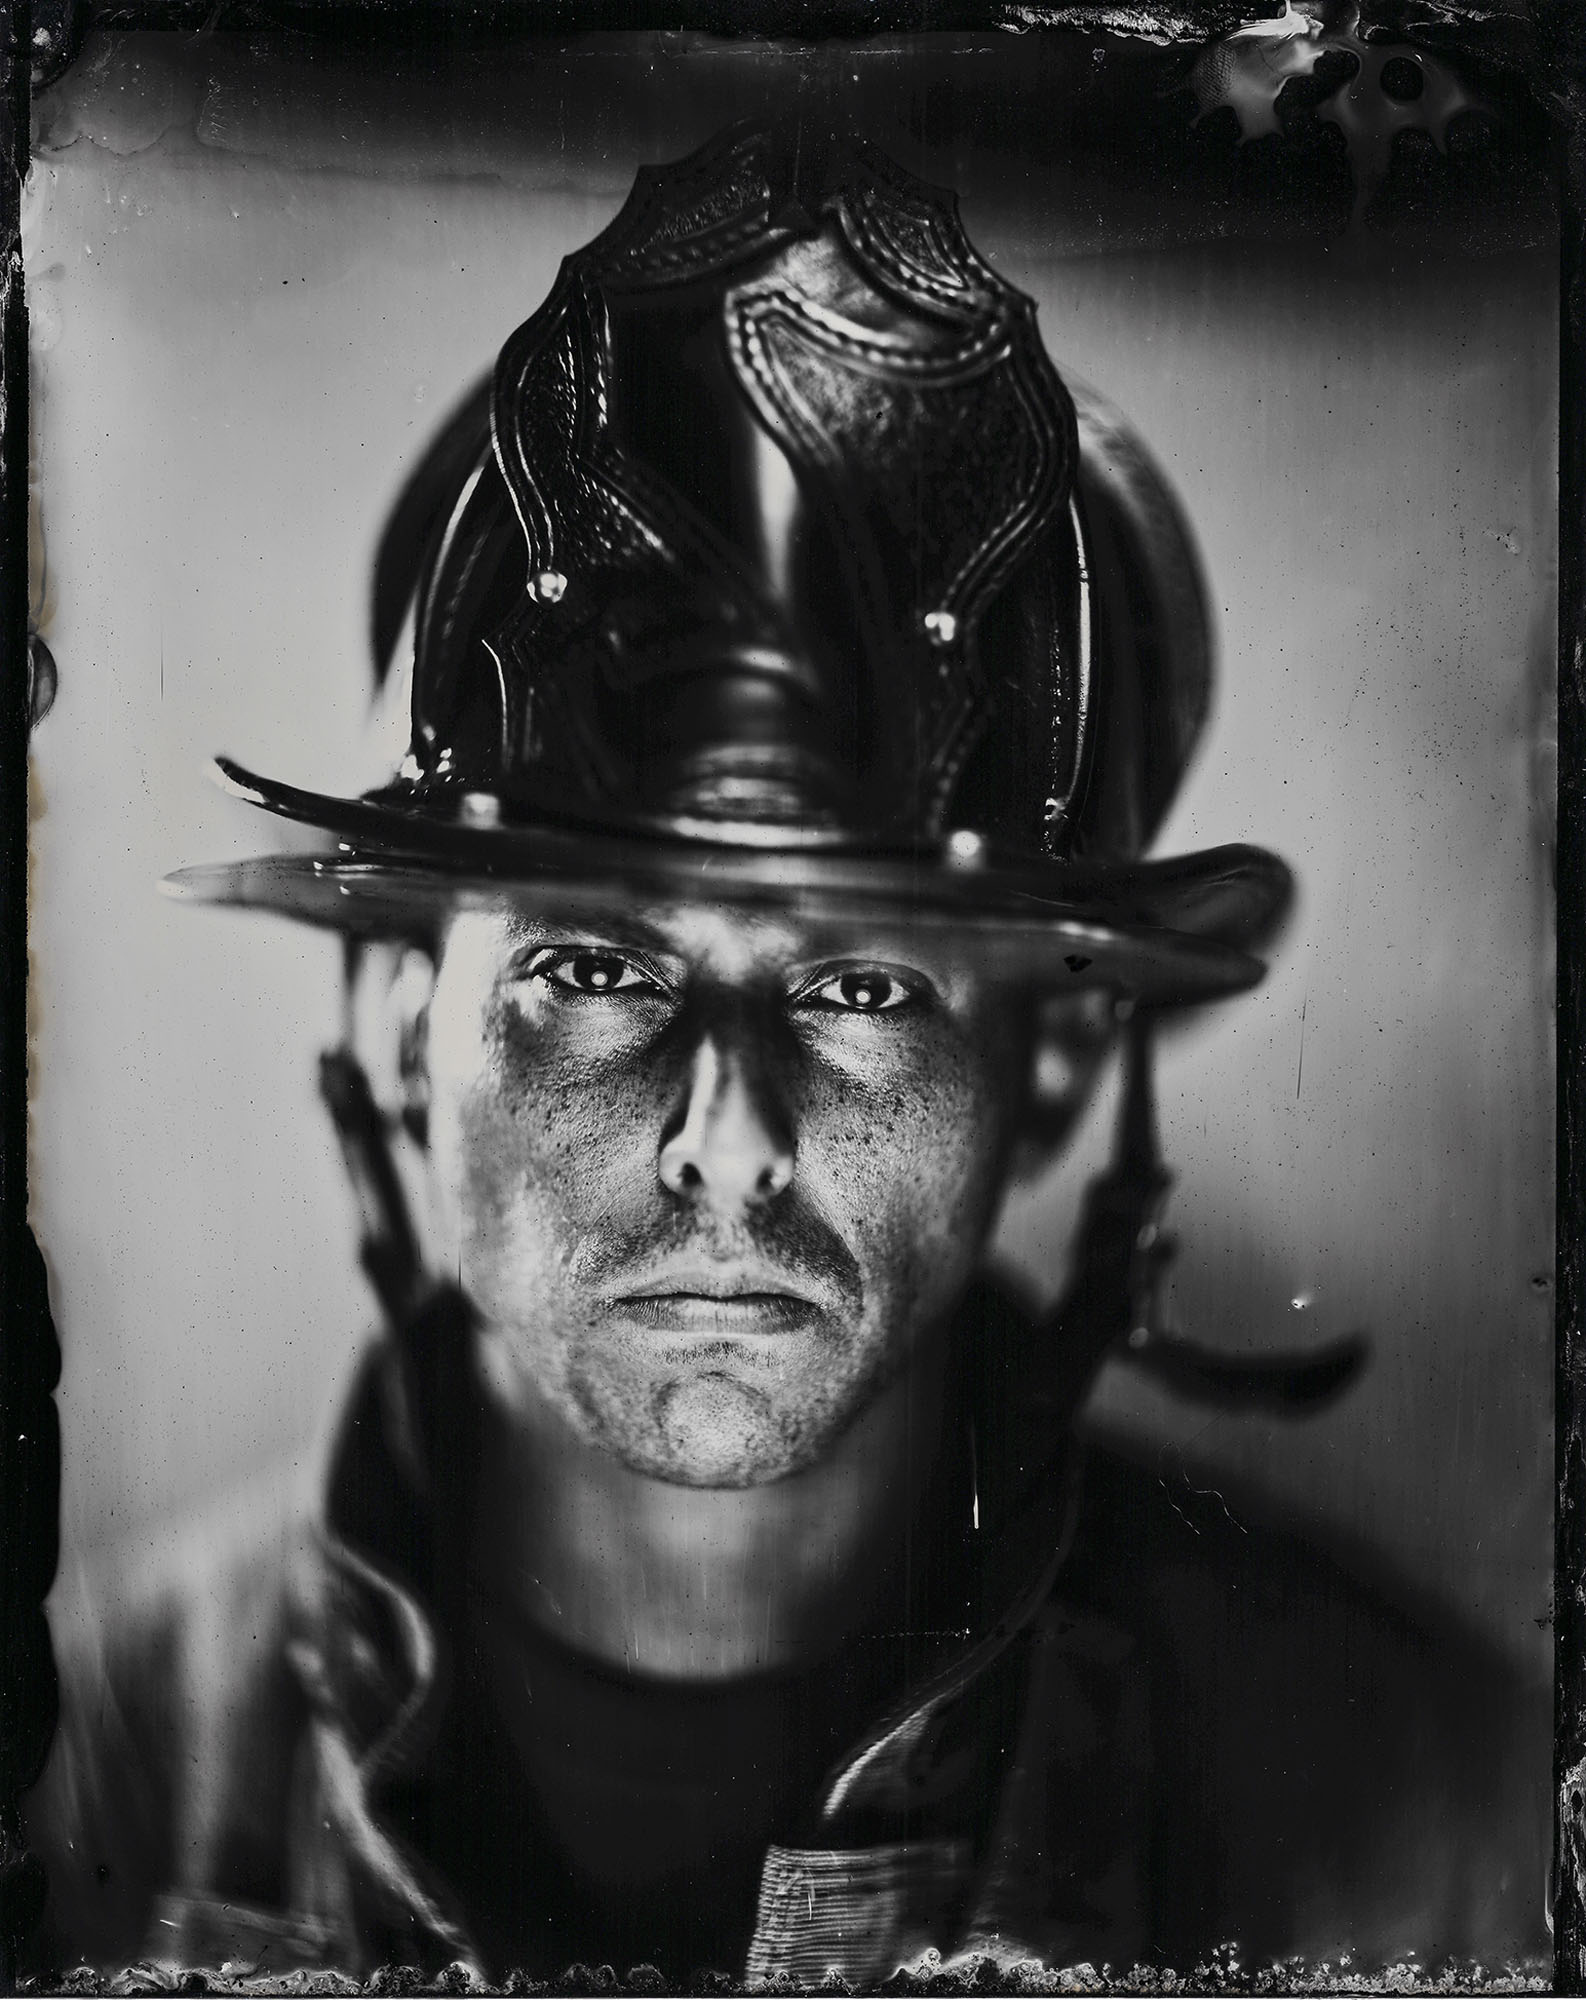 Title : Andrew the Firefighter 11.11.18   By: Michael Marano    www.973studio.com